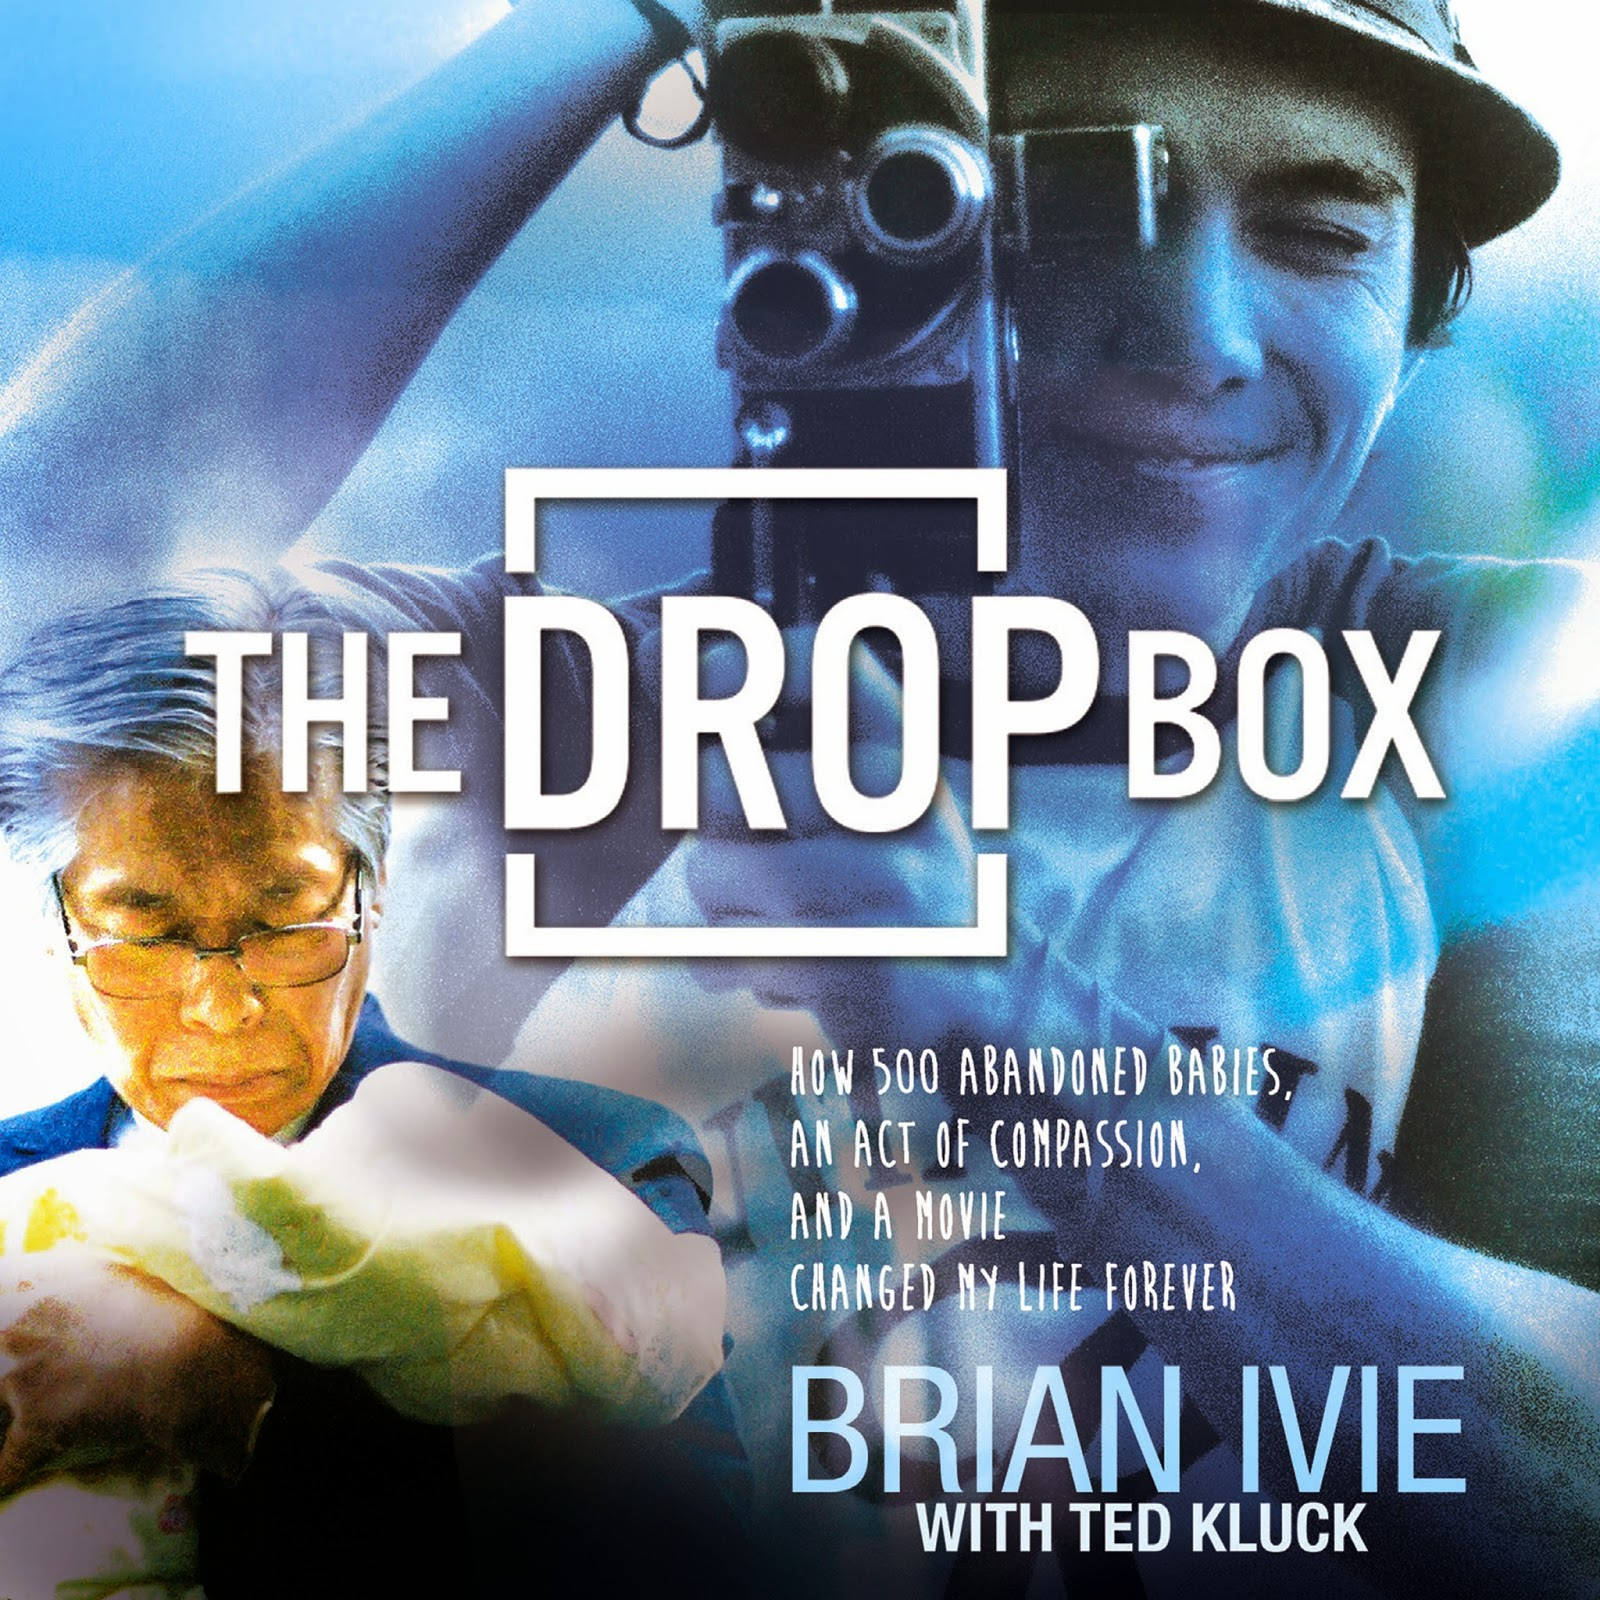 The Drop Box Audiobook reviewed by Miss Pippi on Adolescent Audio Aventures